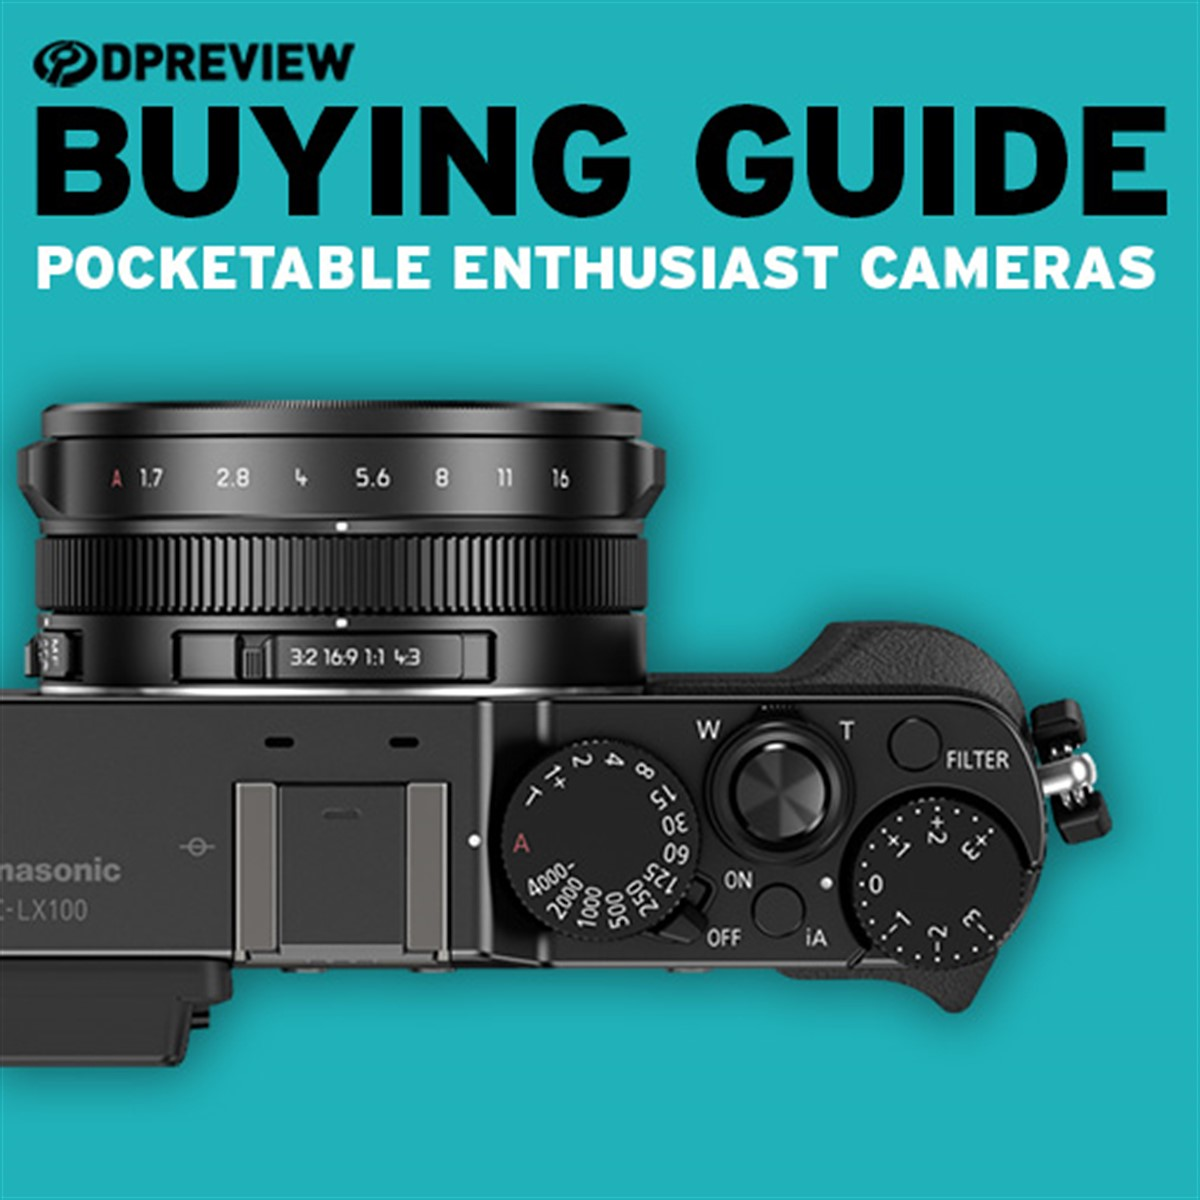 Best Pocketable Camera 2019 2019 Buying Guide: Best pocketable enthusiast cameras: Digital